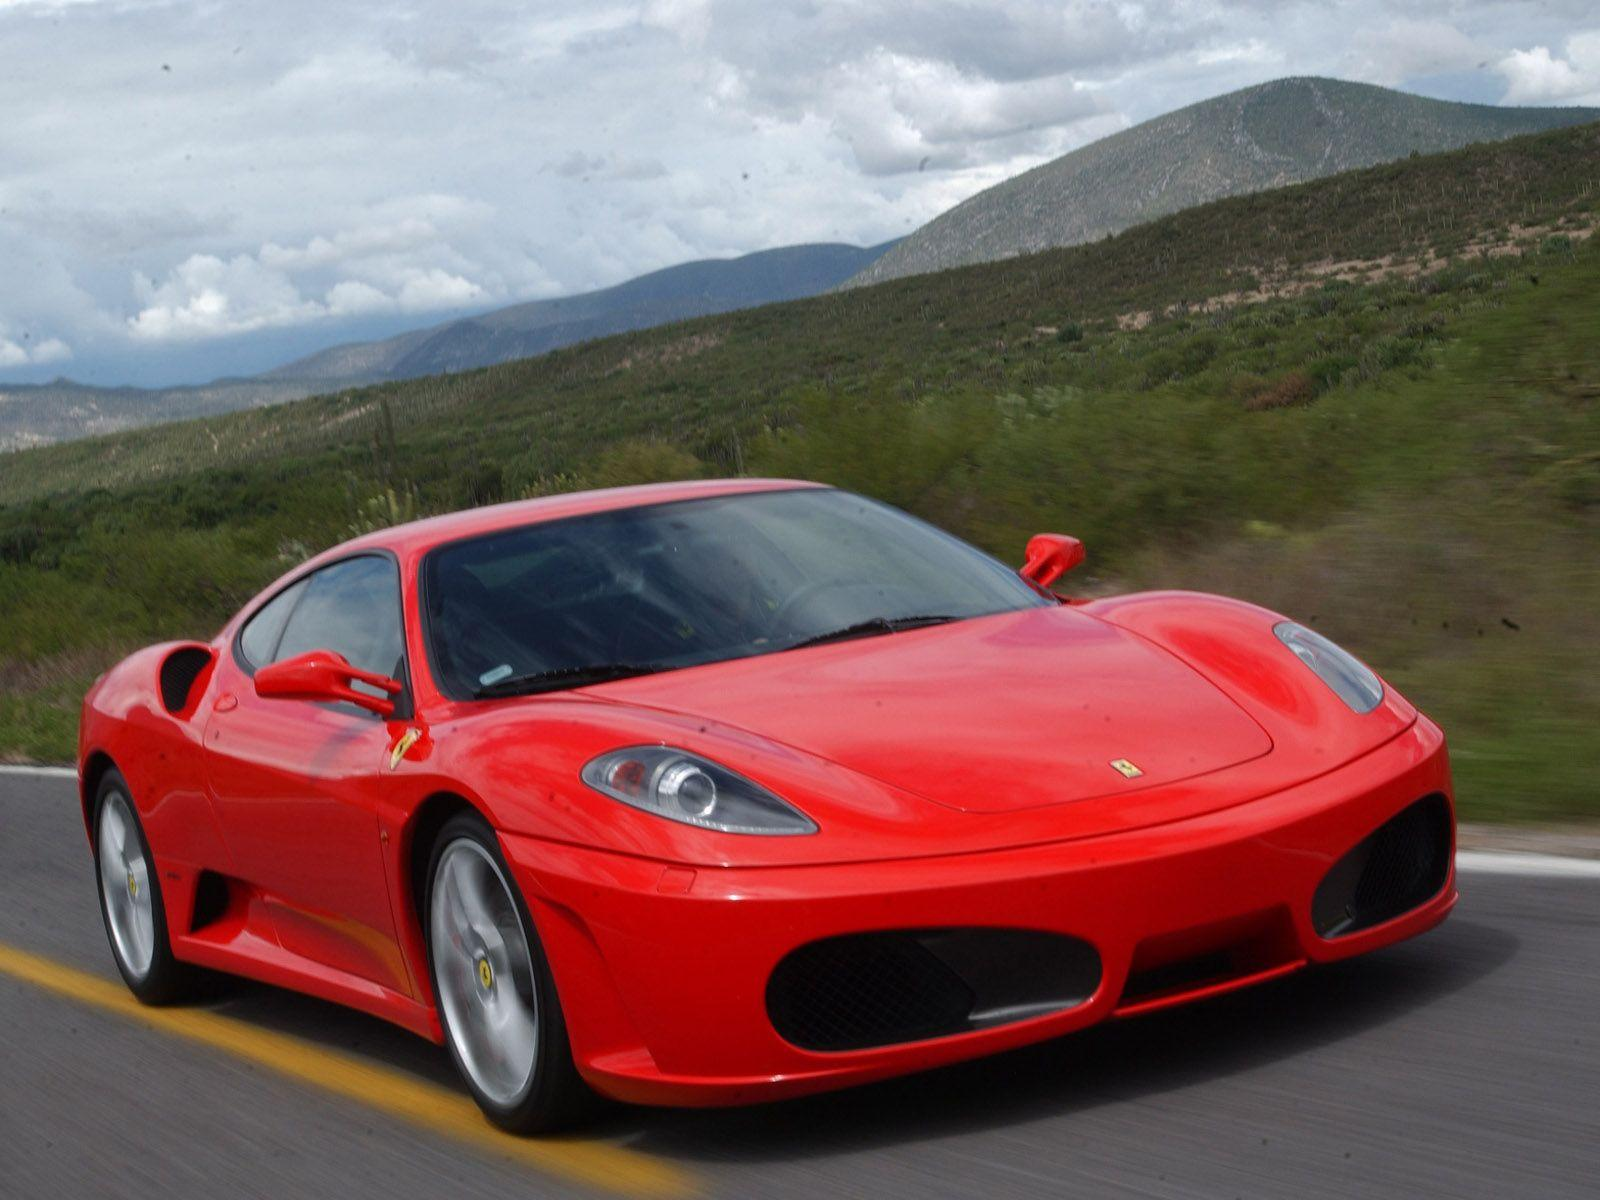 Free Wallpapers Image: Ferrari On Road Car Wallpapers